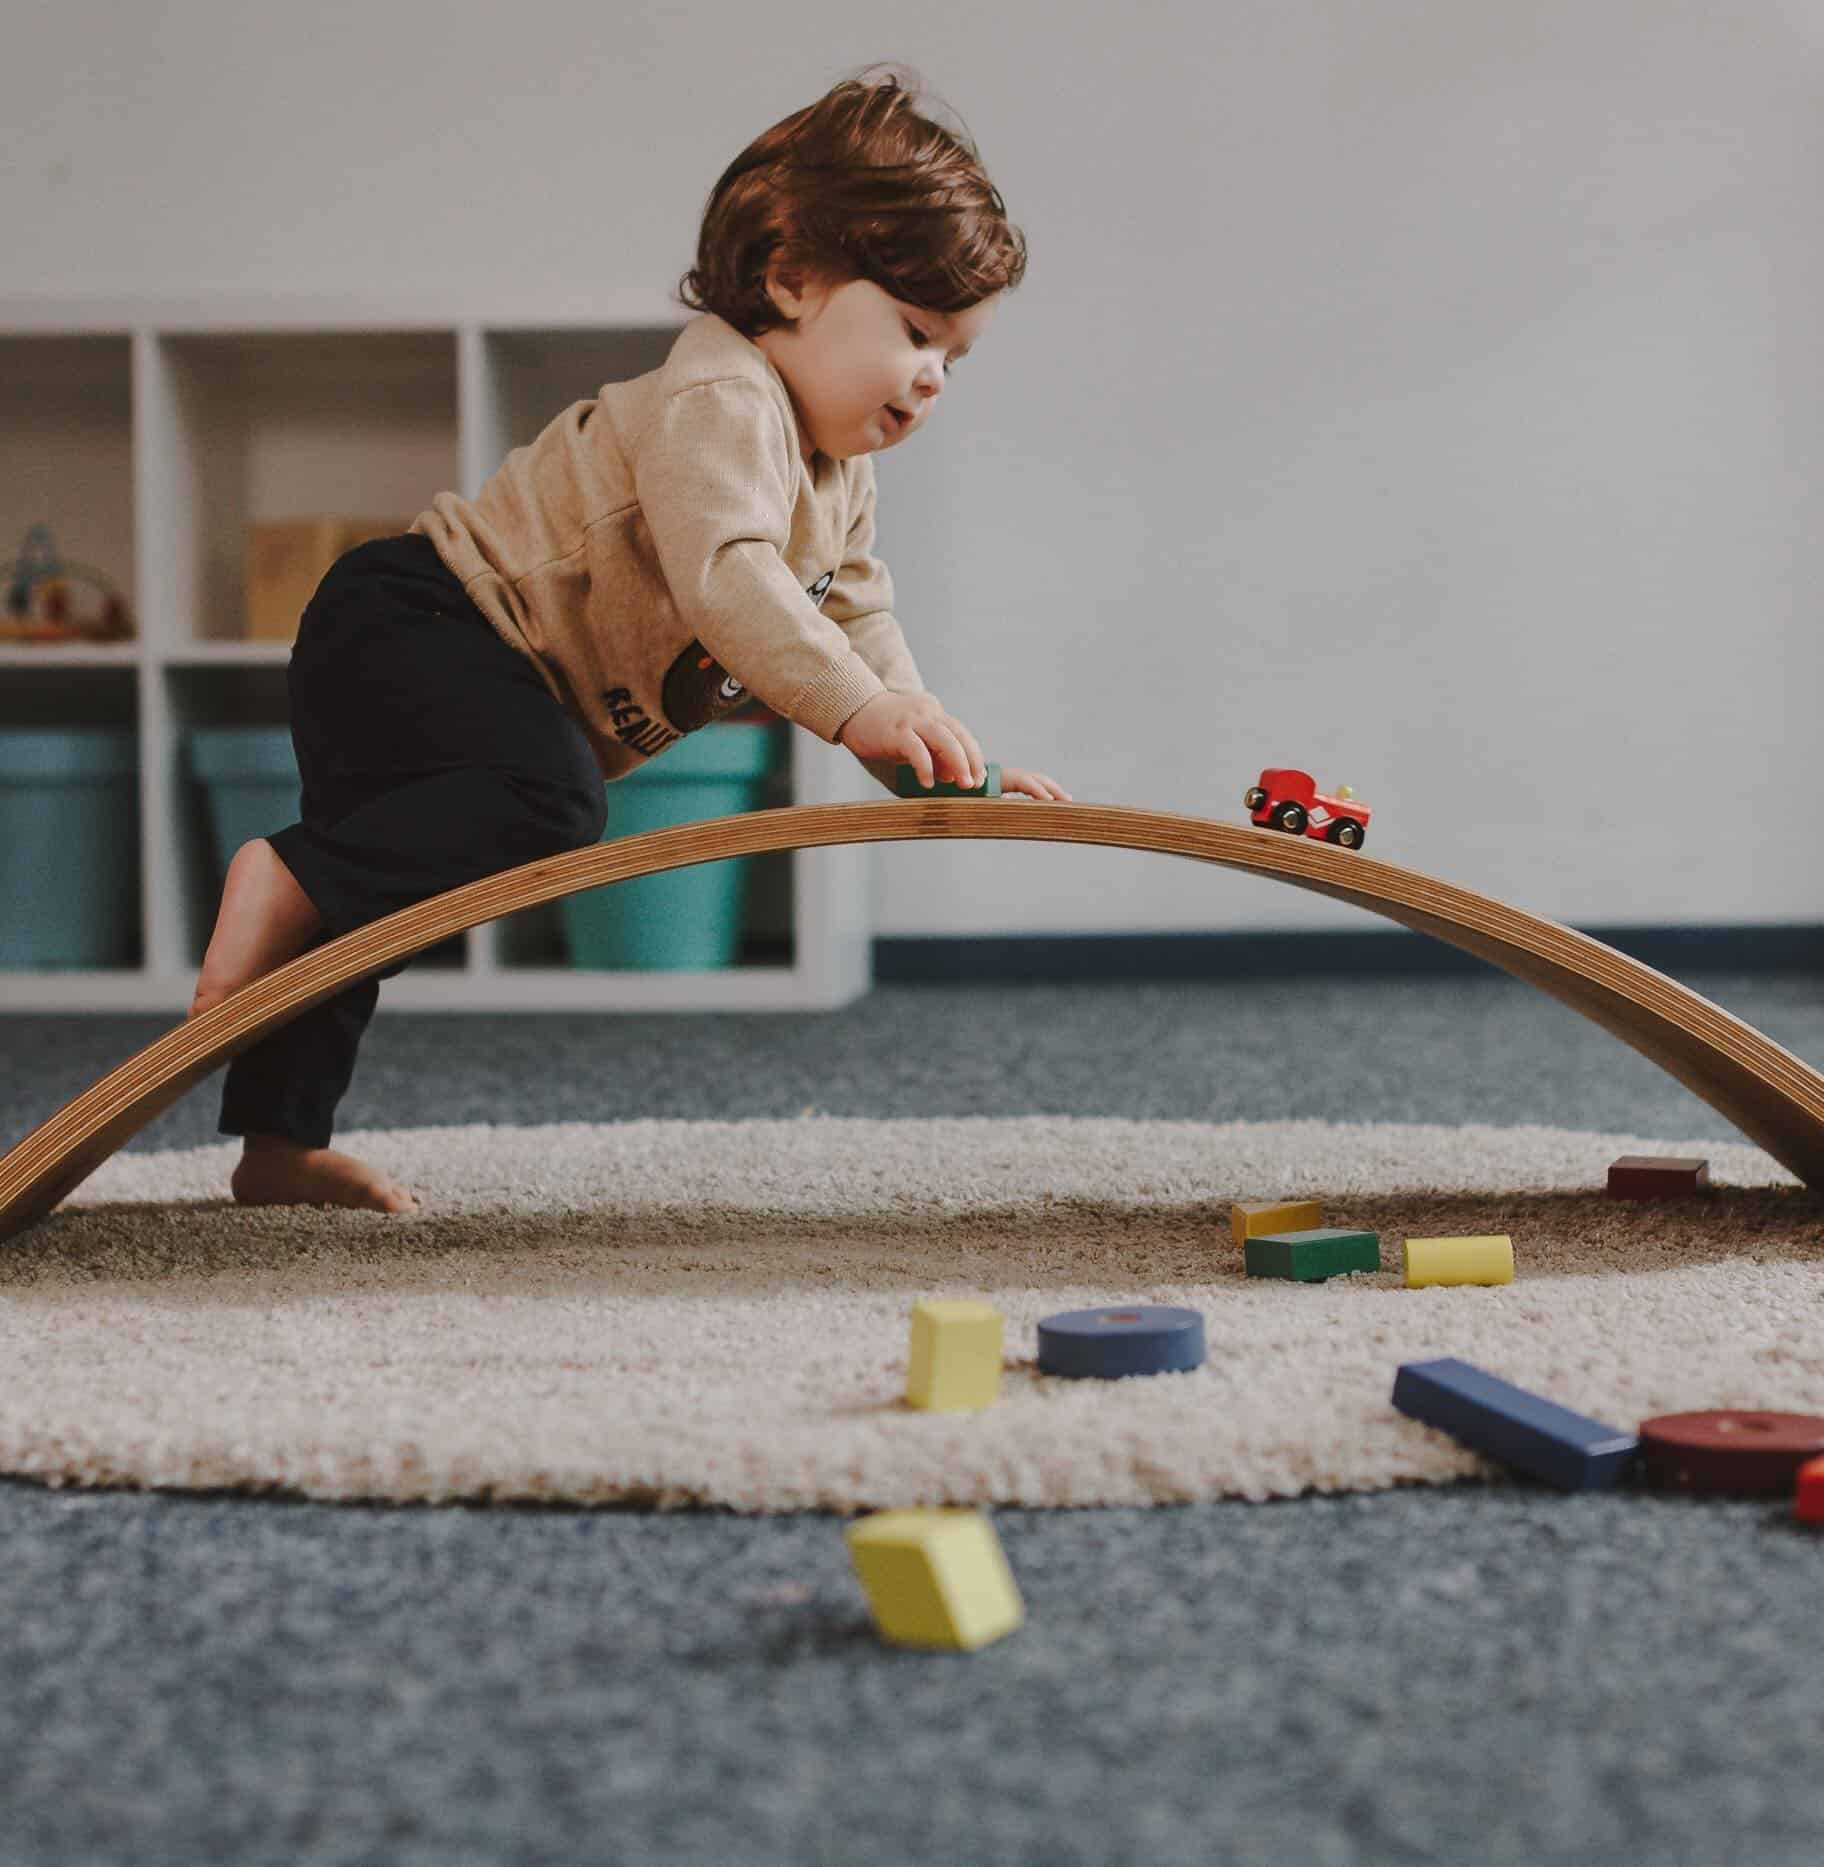 Balance Board Exercises For Back: WOODEN BALANCE BOARD FOR KIDS